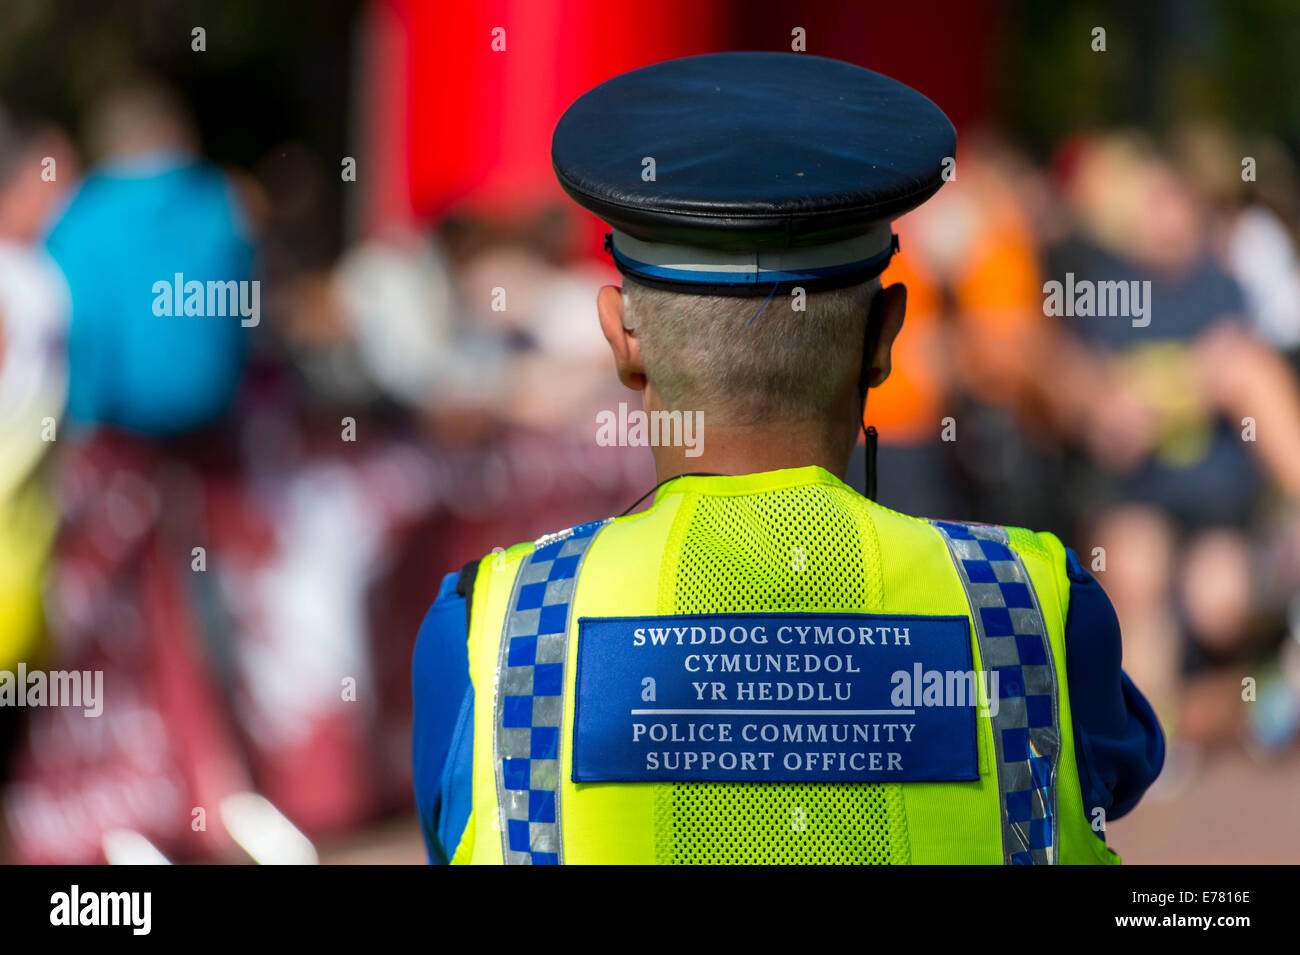 A Welsh police community support officer (PCSO) looks on during an event. - Stock Image